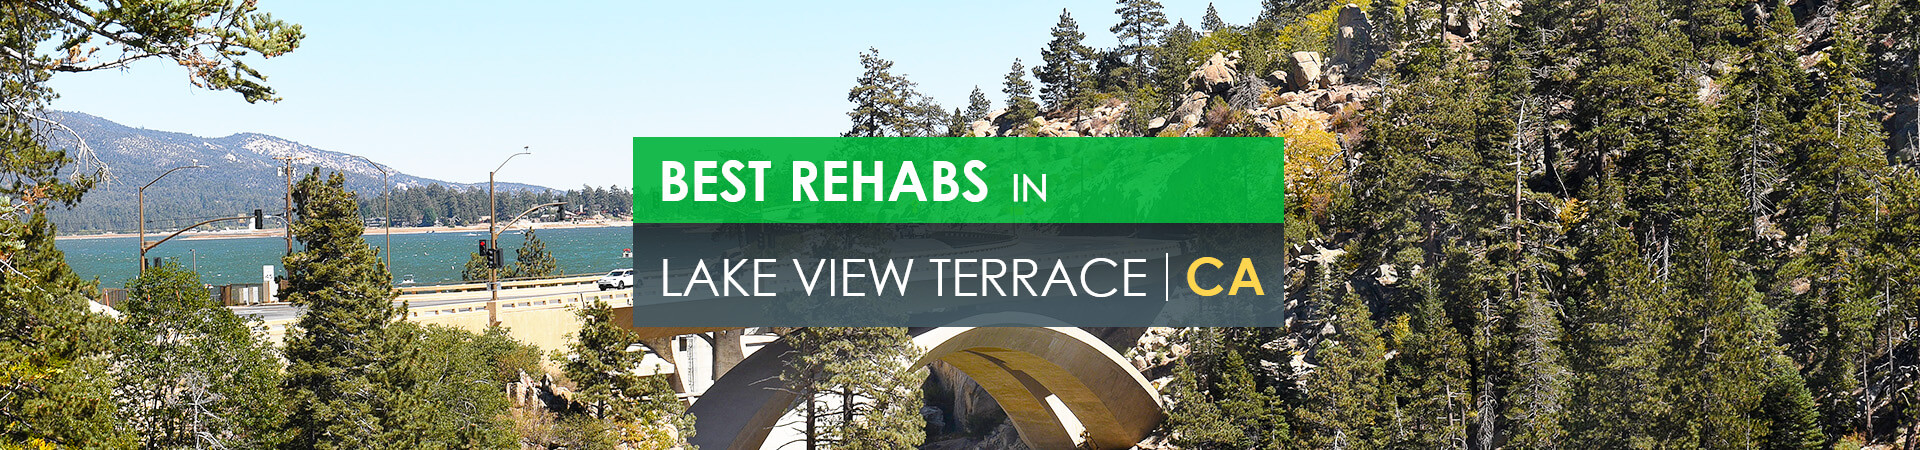 Best rehabs in Lake View Terrace, CA